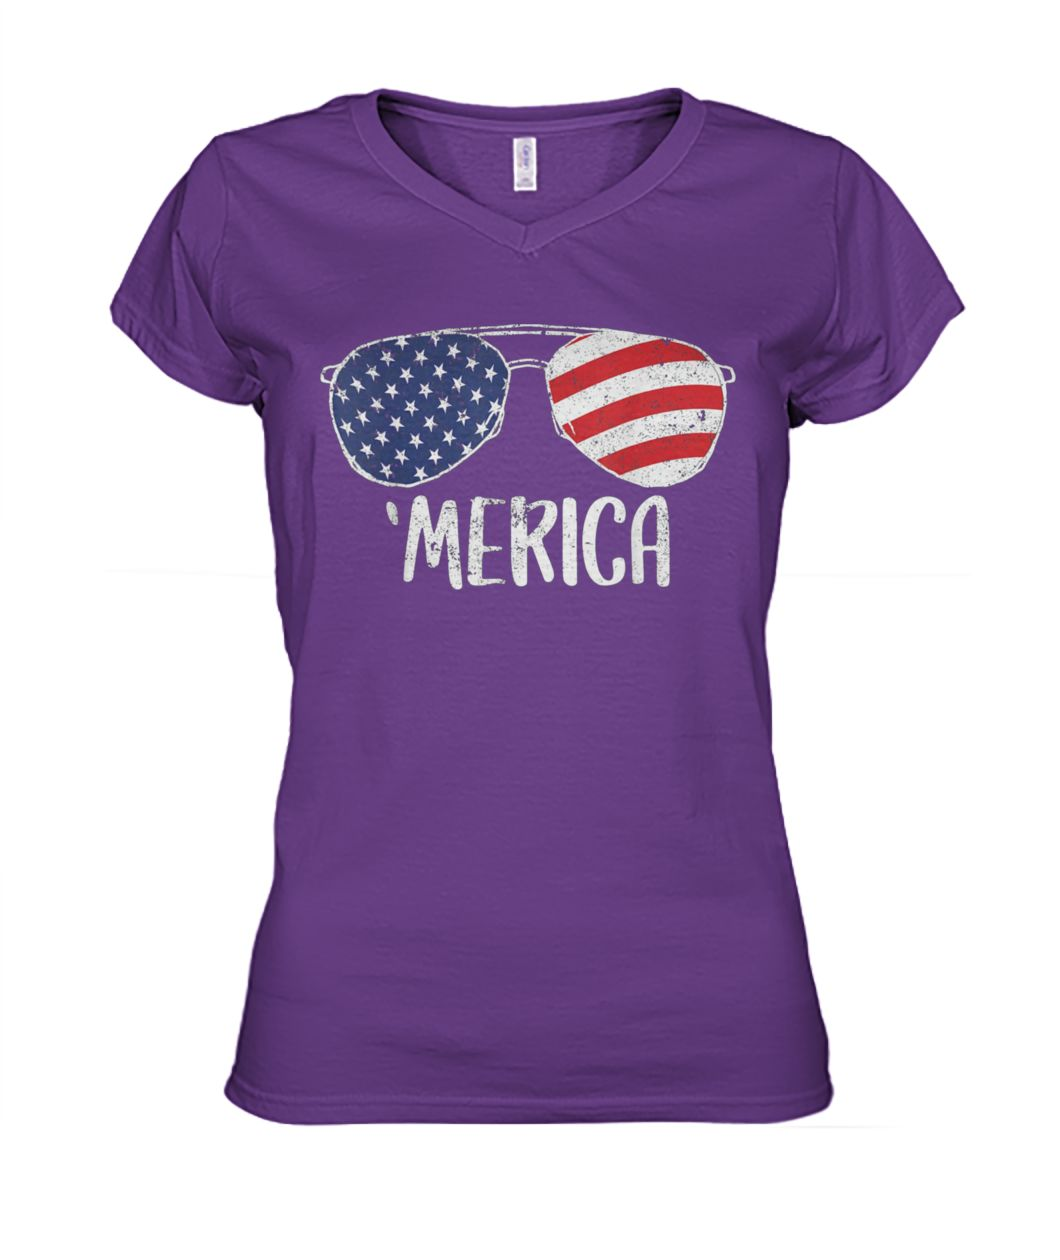 USA flag merica sunglasses 4th of july women's v-neck